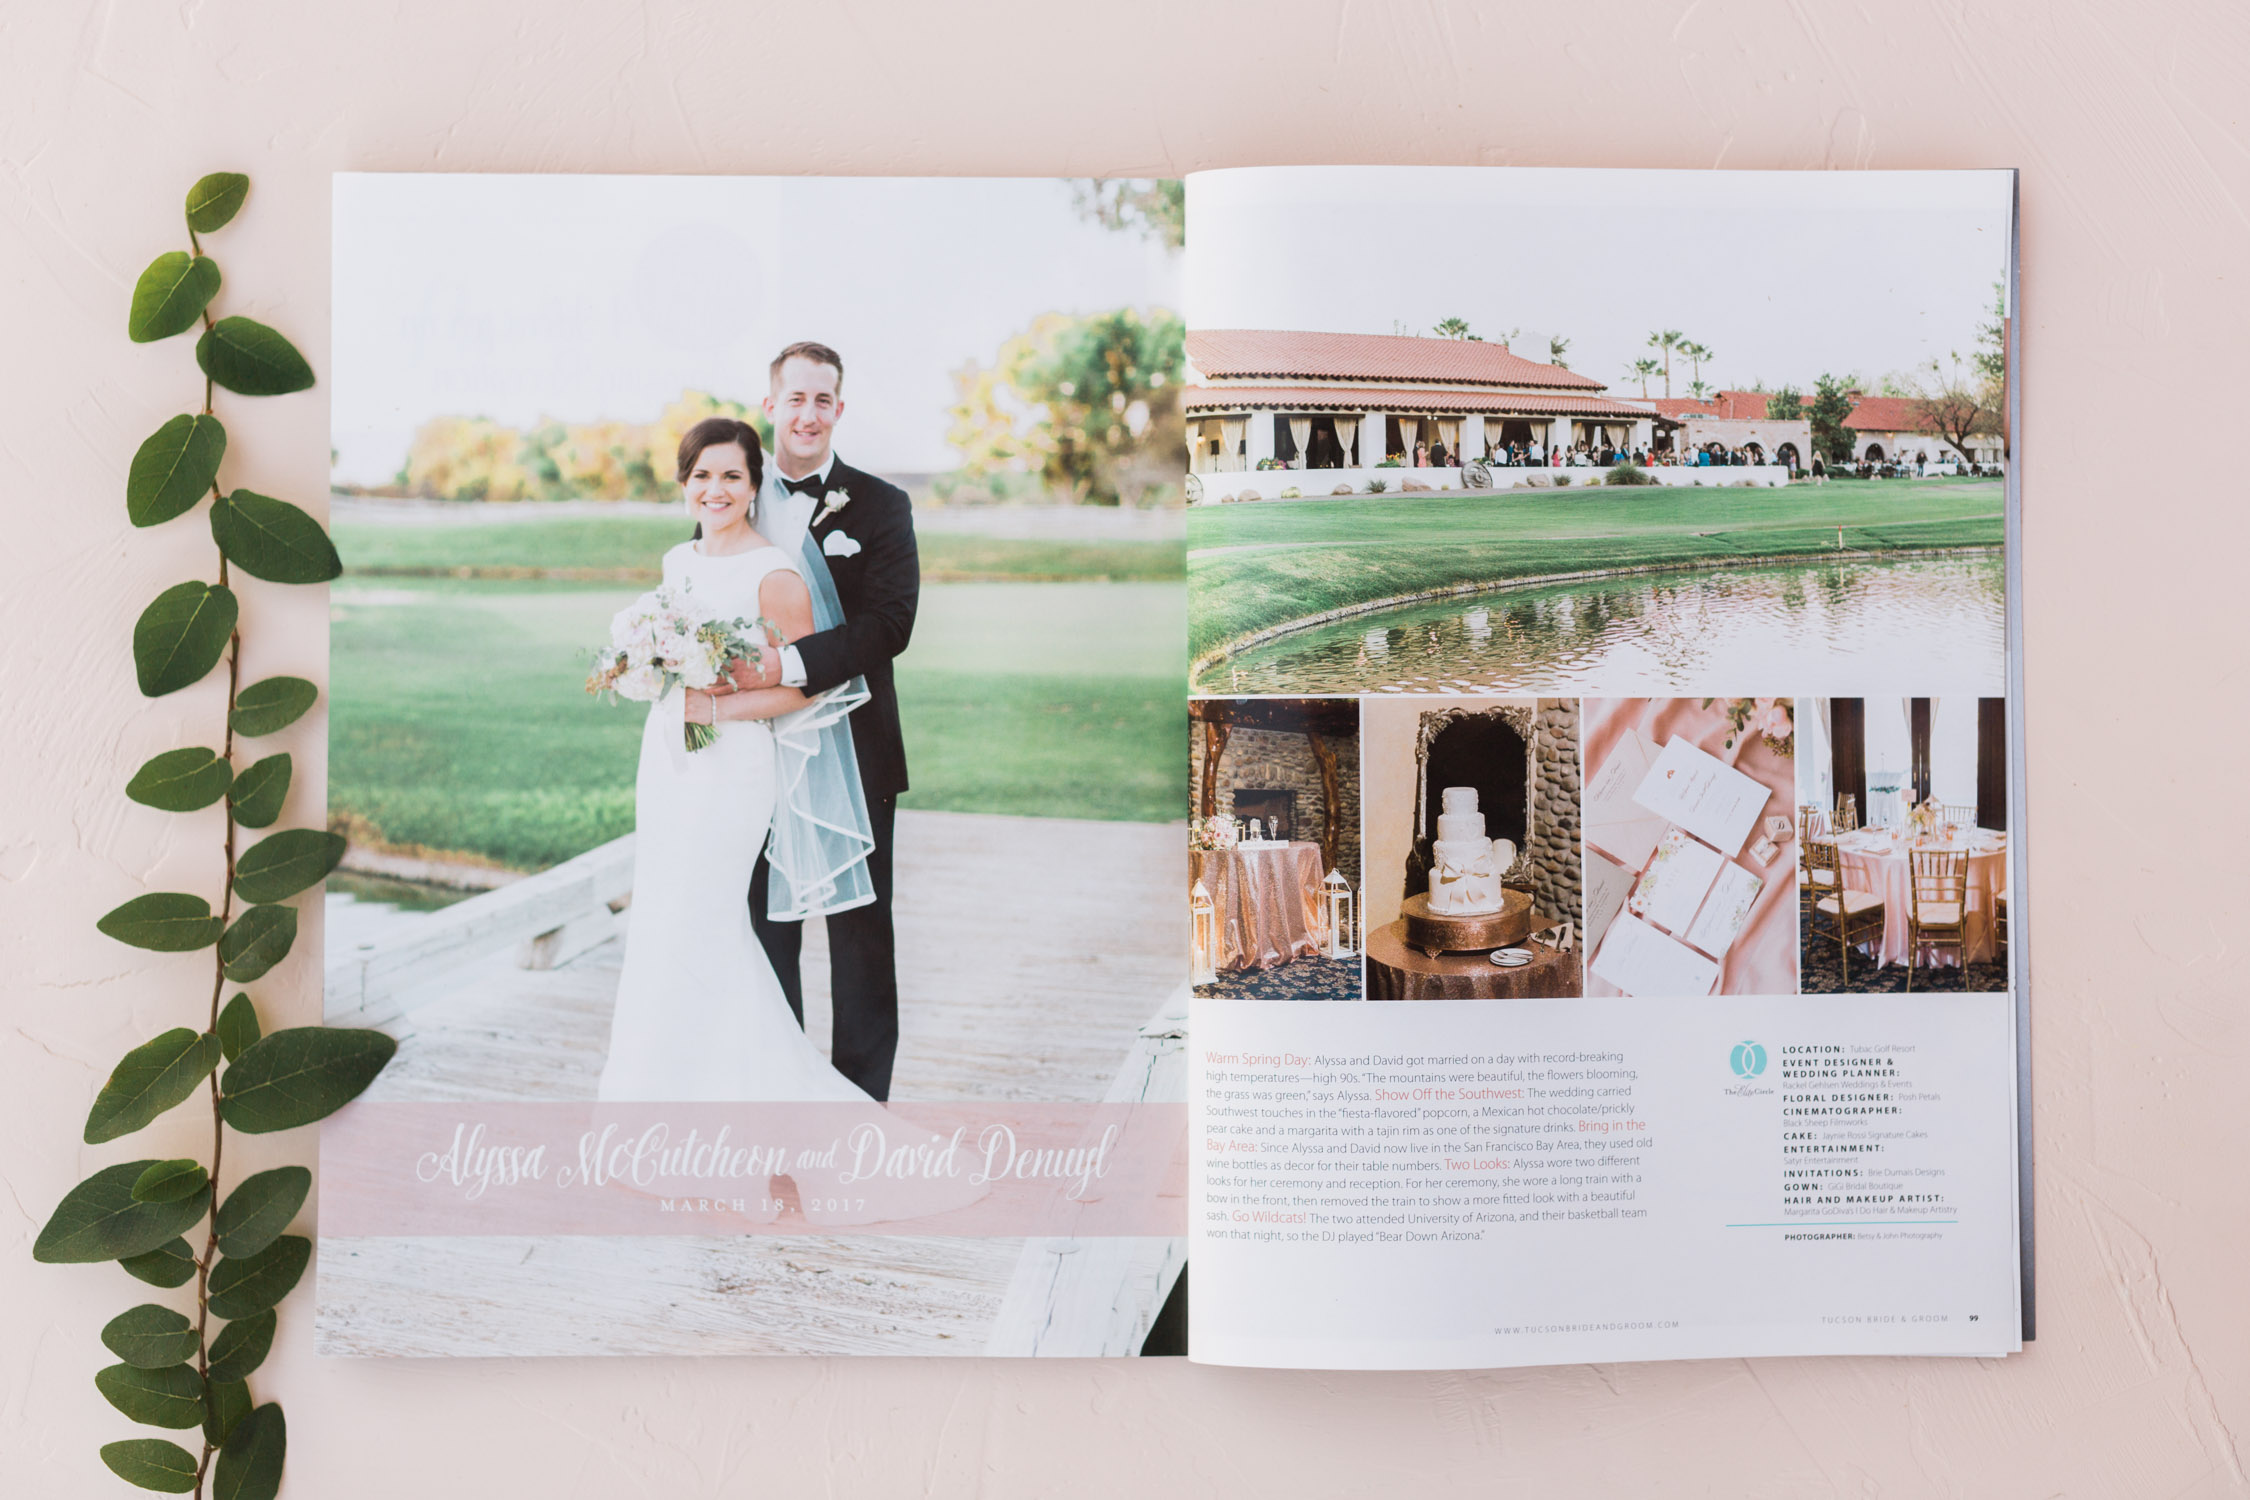 Alyssa & Dave's gorgeous Tubac Golf Resort wedding featured in Tucson Bride & Groom! Captured by Tucson wedding Photographers Betsy & John